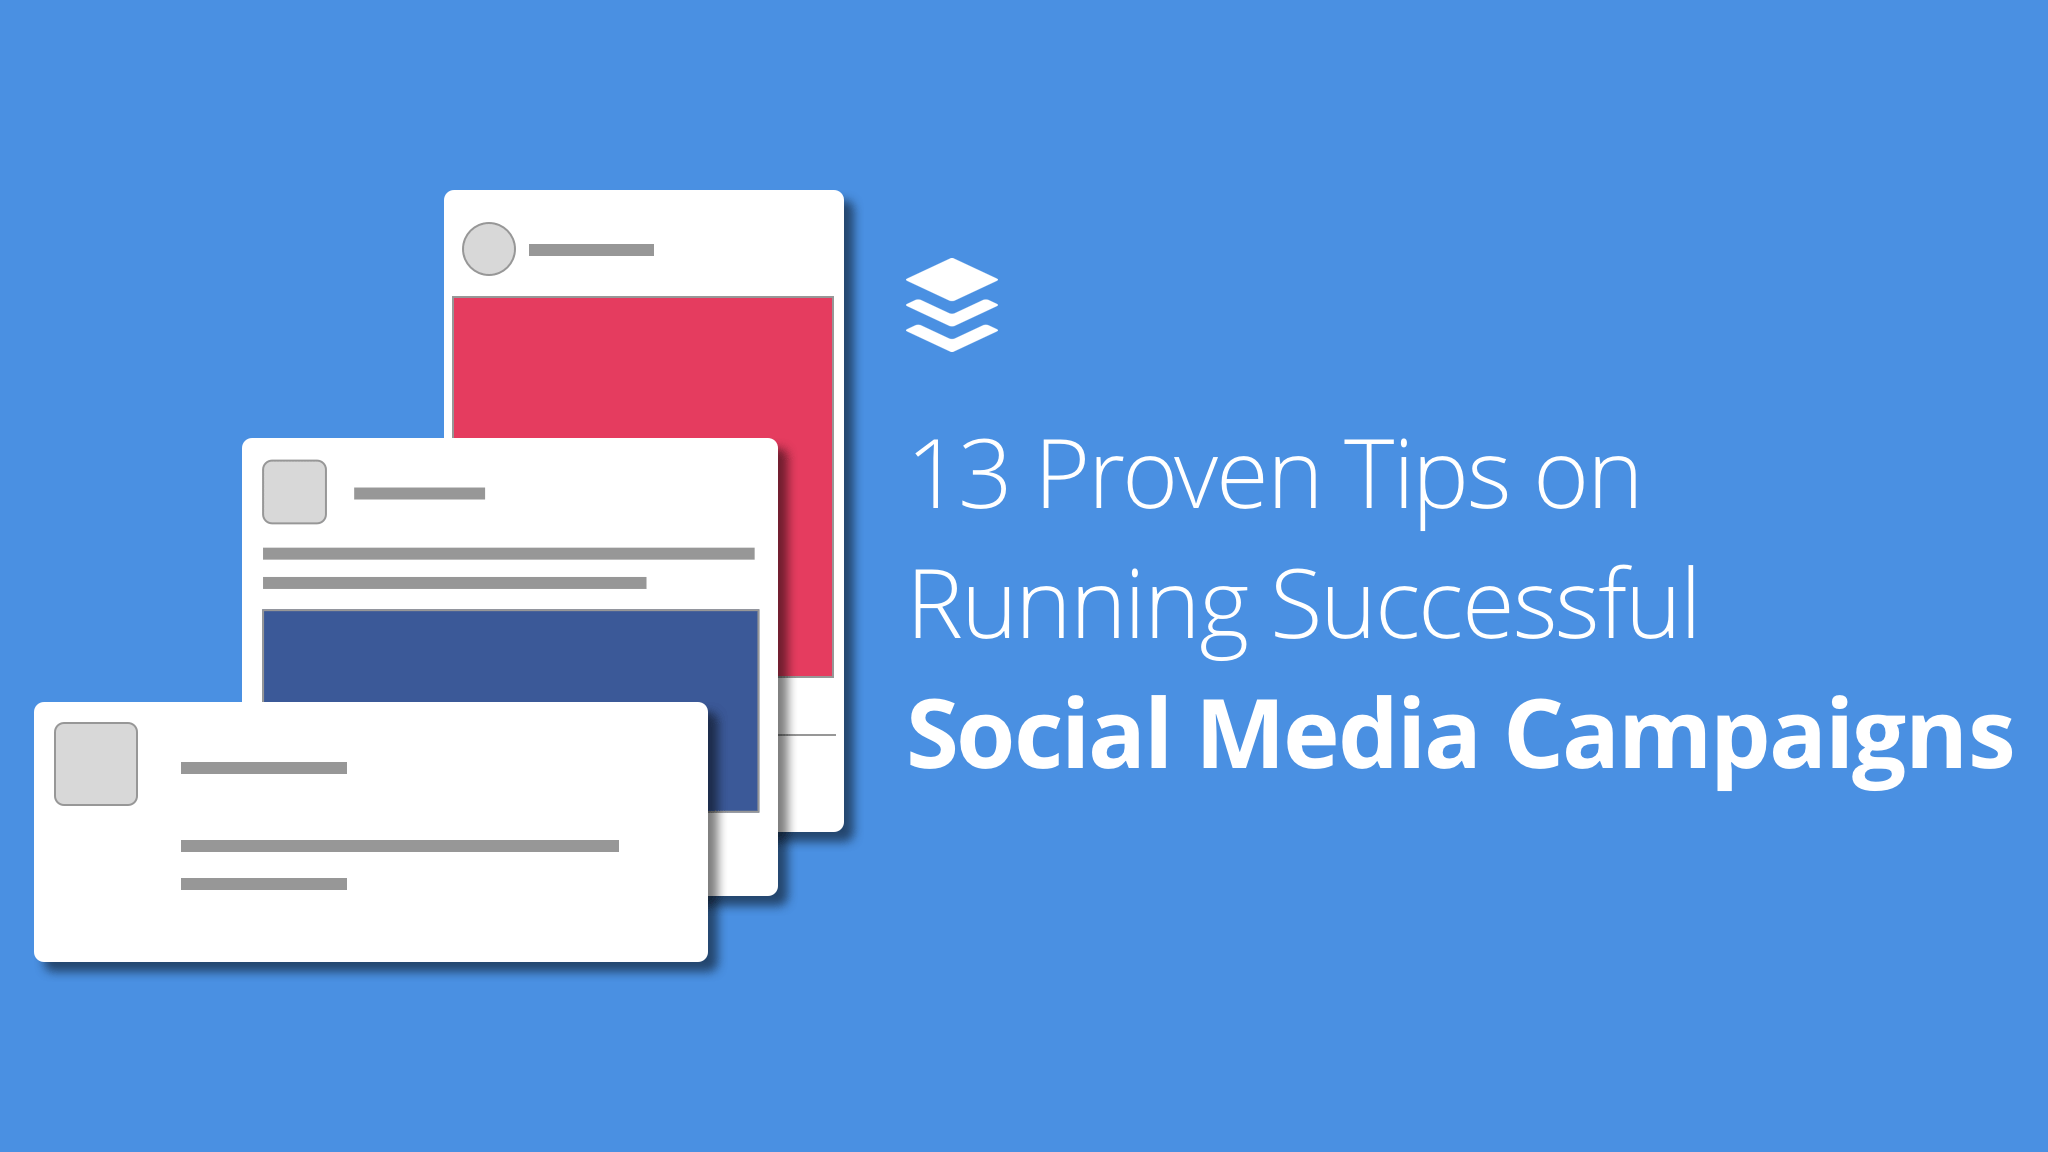 Tips for Social Media Campaigns